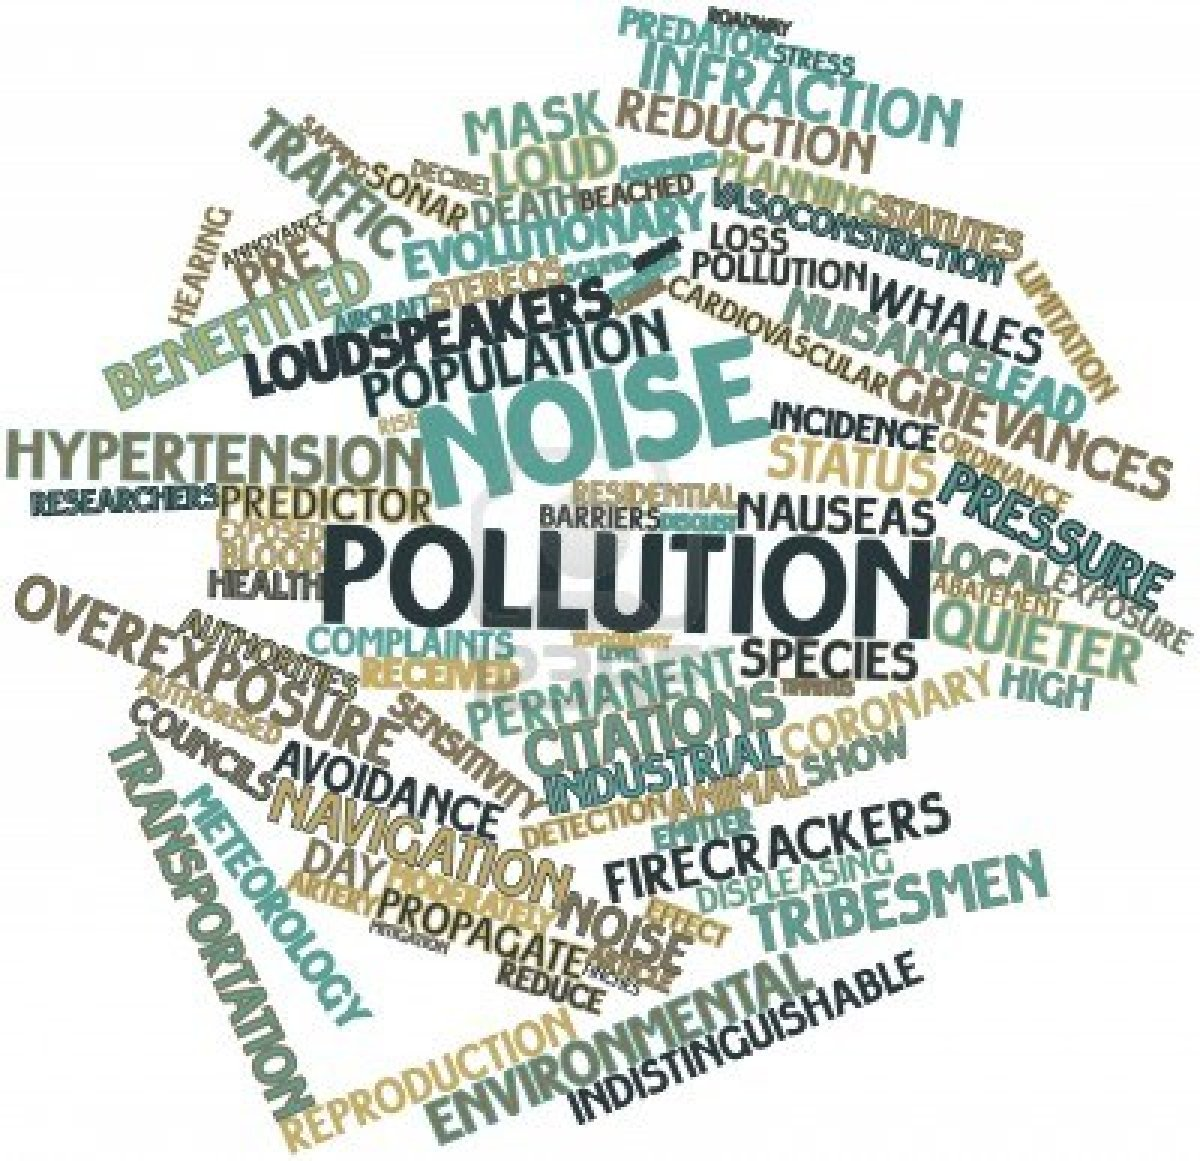 environment new speech topics essay on noise pollution effects